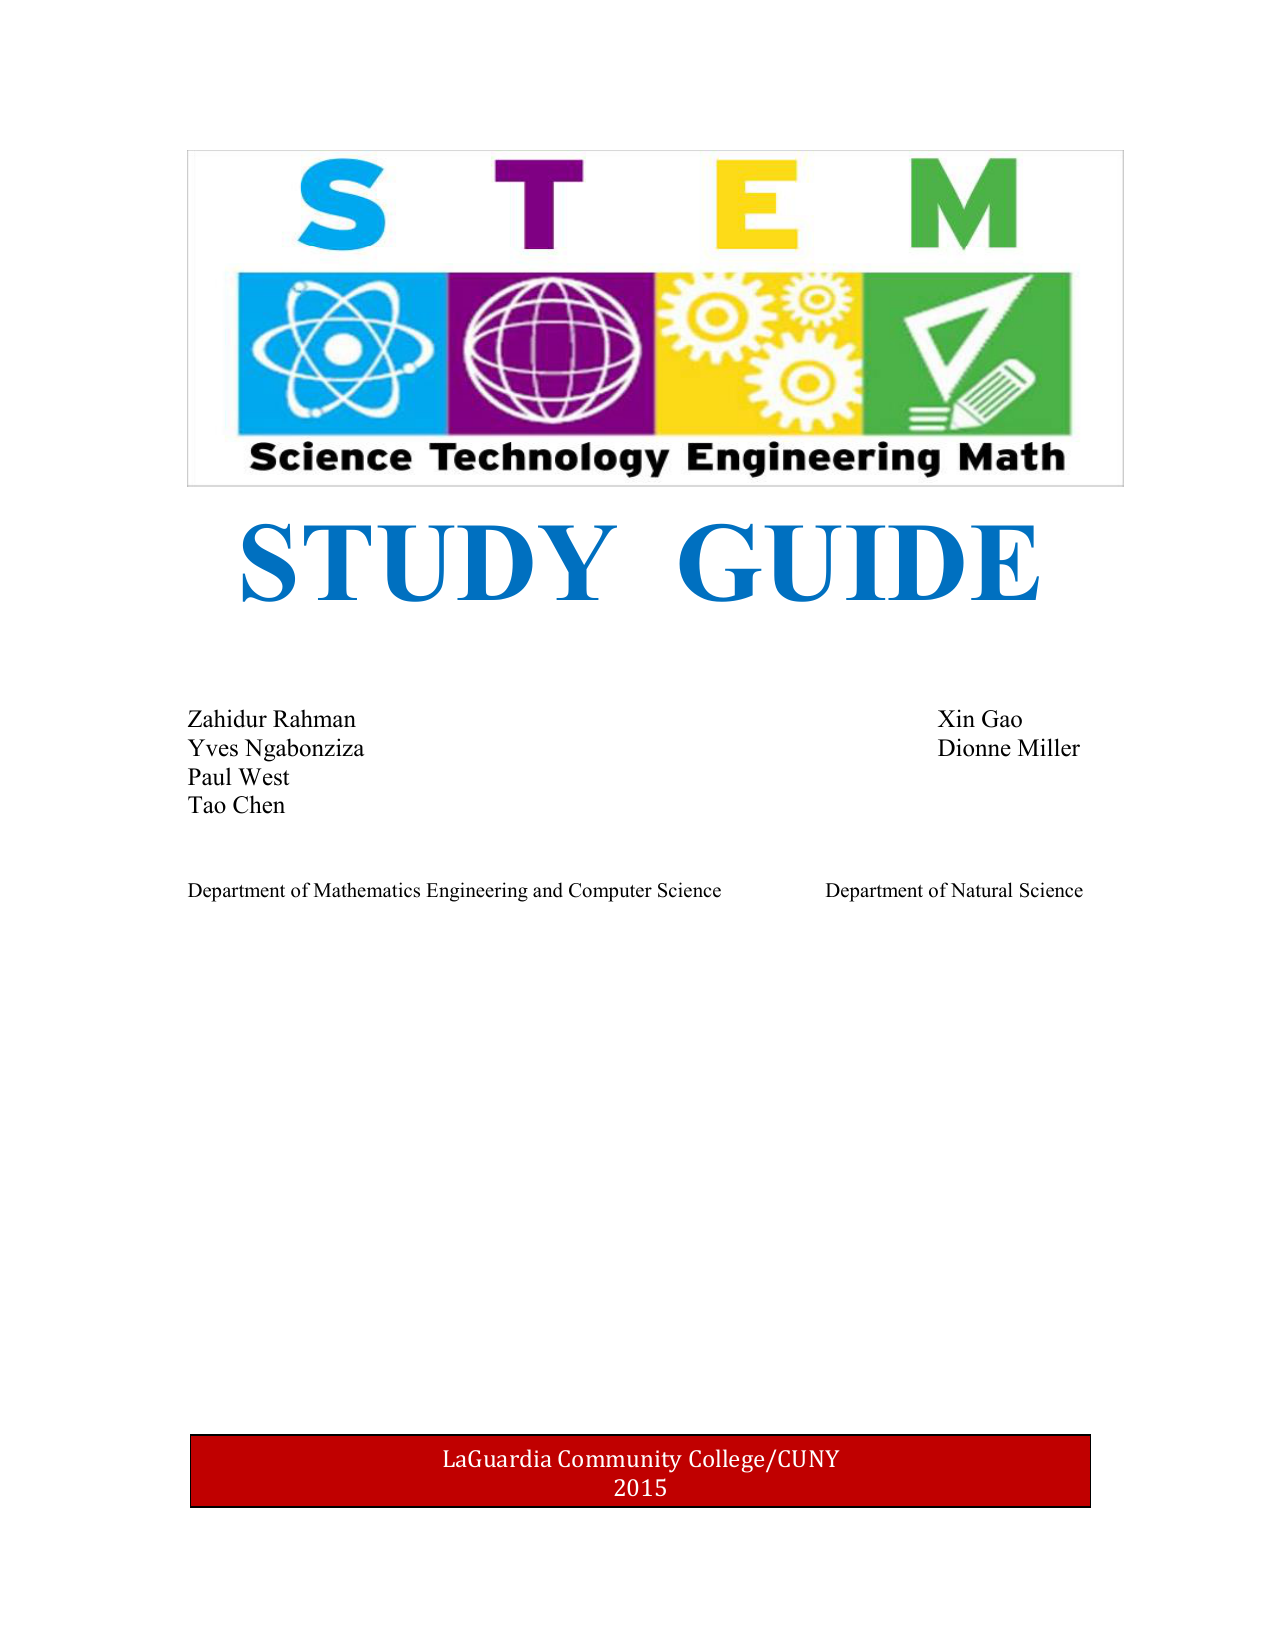 Study Guide Laguardia Community College Find The Open Circuit Voltage Voc Short Cheggcom